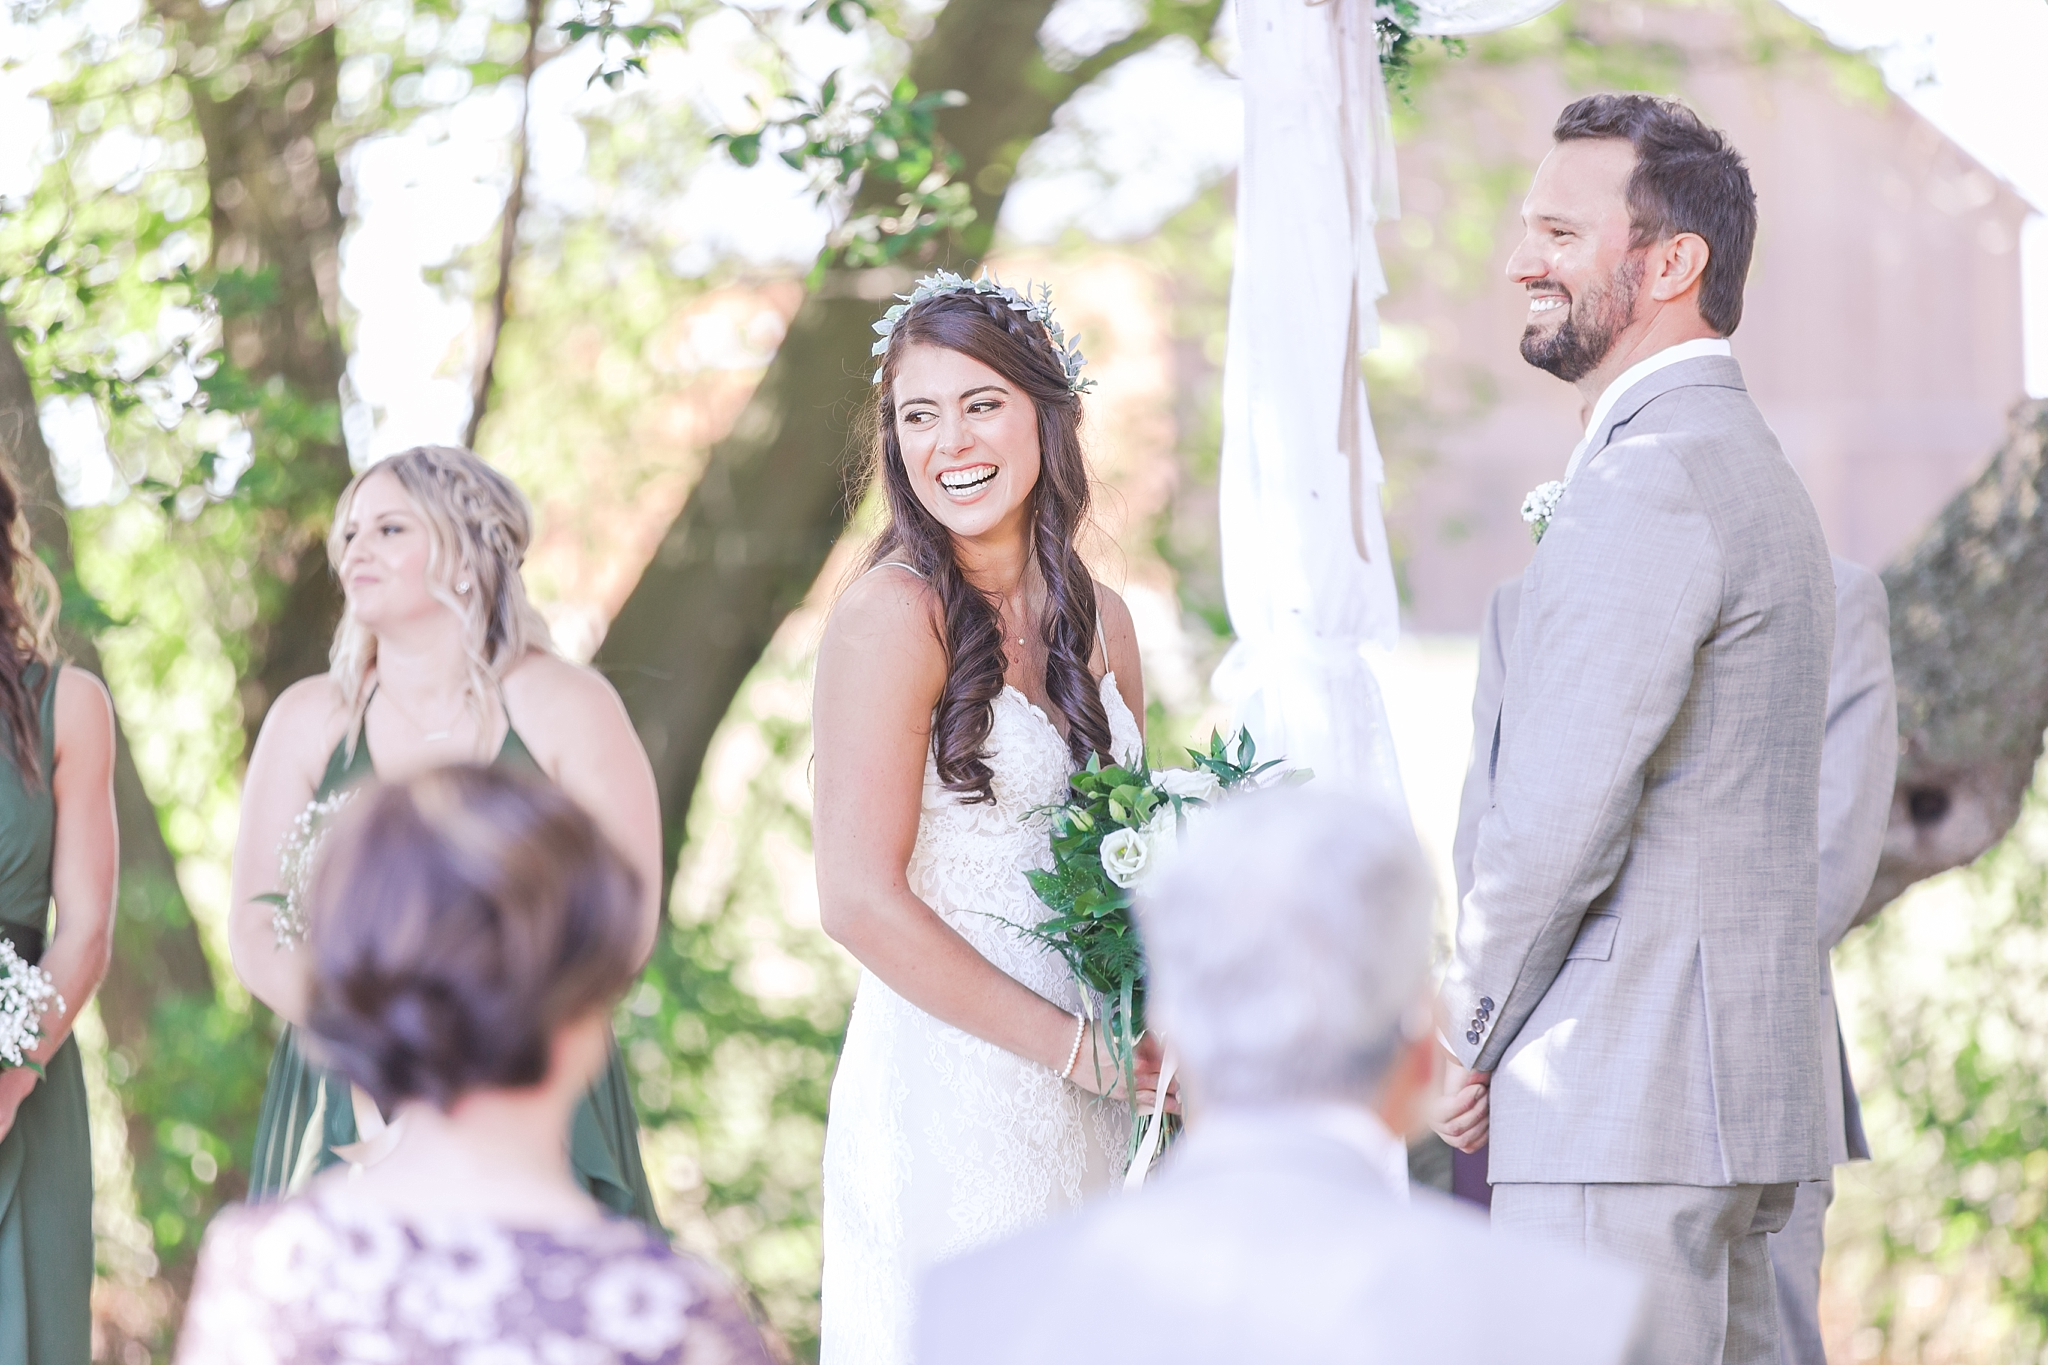 natural-rustic-wedding-photos-at-frutig-farms-the-valley-in-ann-arbor-michigan-by-courtney-carolyn-photography_0064.jpg